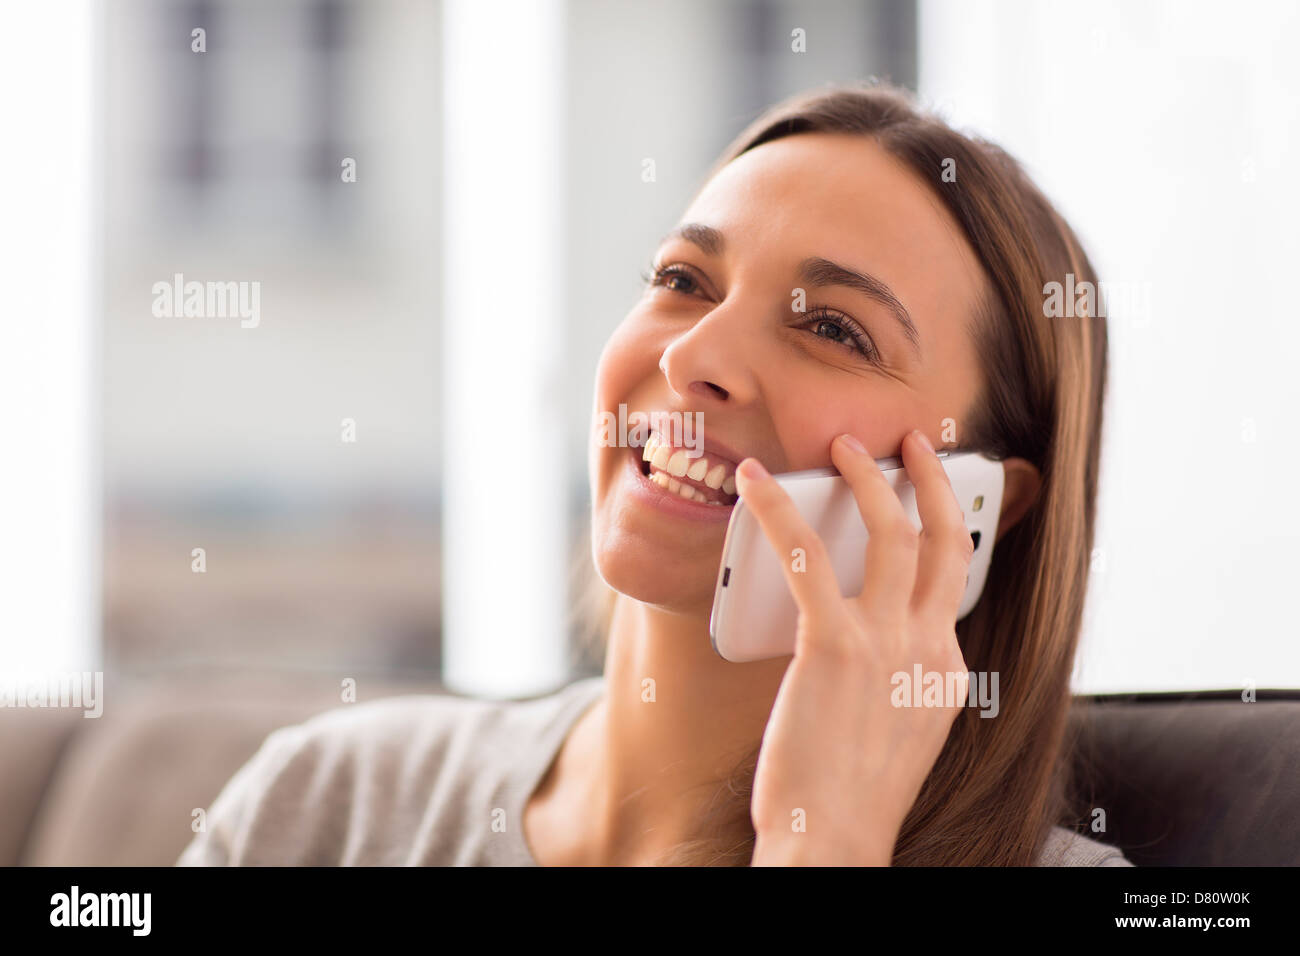 Pretty young female using white mobile phone at home smiling - Stock Image